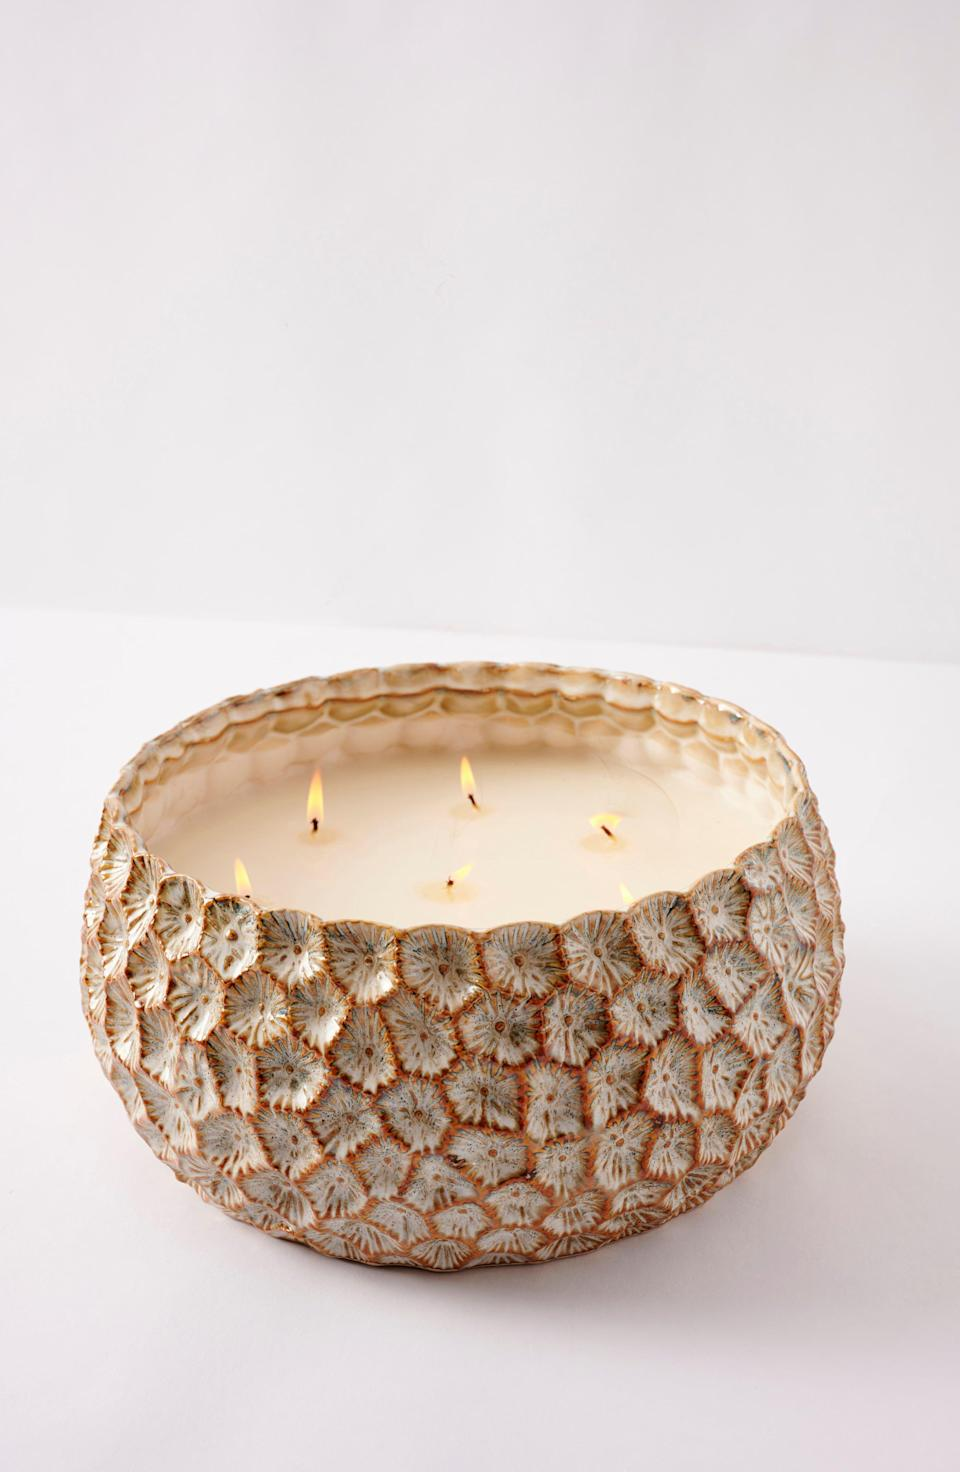 """<p><strong>ANTHROPOLOGIE HOME</strong></p><p>nordstrom.com</p><p><strong>$89.90</strong></p><p><a href=""""https://go.redirectingat.com?id=74968X1596630&url=https%3A%2F%2Fshop.nordstrom.com%2Fs%2Fanthropologie-home-medium-honeycomb-scented-candle%2F5570186&sref=https%3A%2F%2Fwww.veranda.com%2Fluxury-lifestyle%2Fg33484341%2Fnordstrom-anniversary-sale-2020%2F"""" rel=""""nofollow noopener"""" target=""""_blank"""" data-ylk=""""slk:Discover"""" class=""""link rapid-noclick-resp"""">Discover</a></p><p>This candle makes a statement with its charming honeycomb design. With notes of tonka and tobacco leaf, this is the perfectly balanced candle for every nose in your home. </p>"""